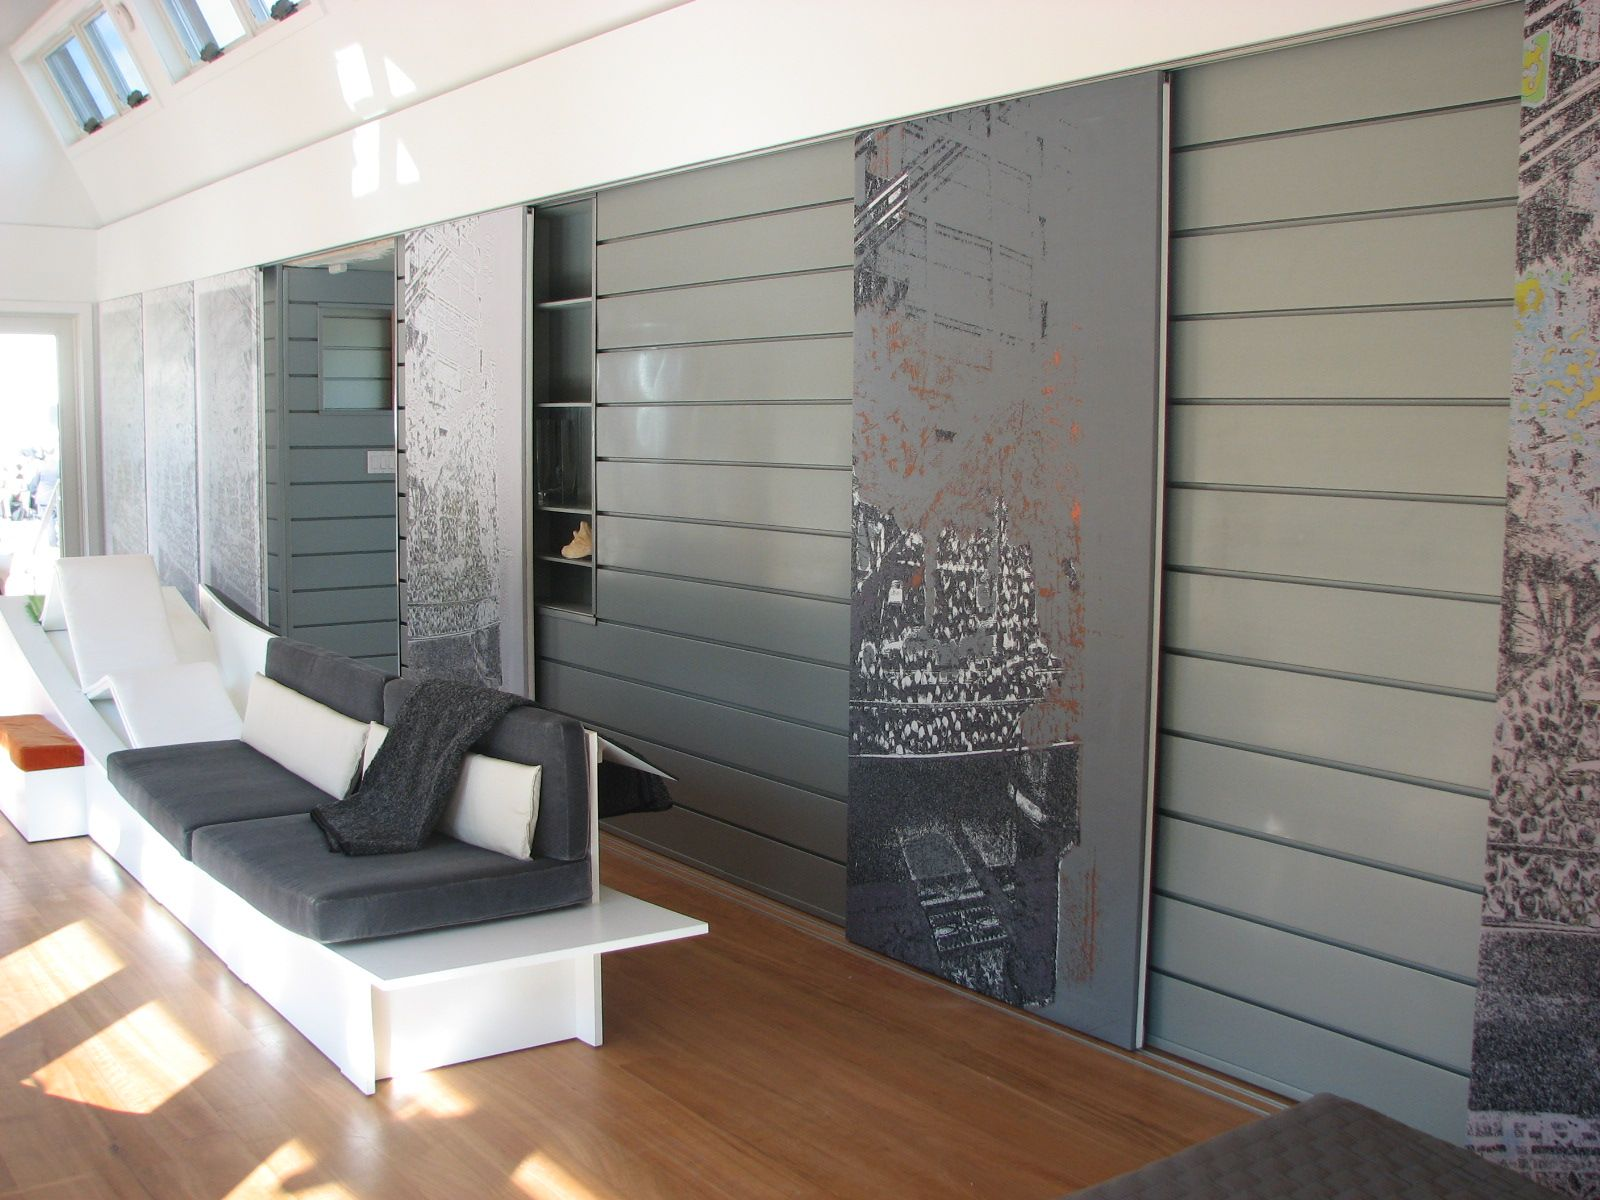 Interior Wall Reveal Panels Preweathered Zinc Zinc Facade System Facade Cladding Solutions